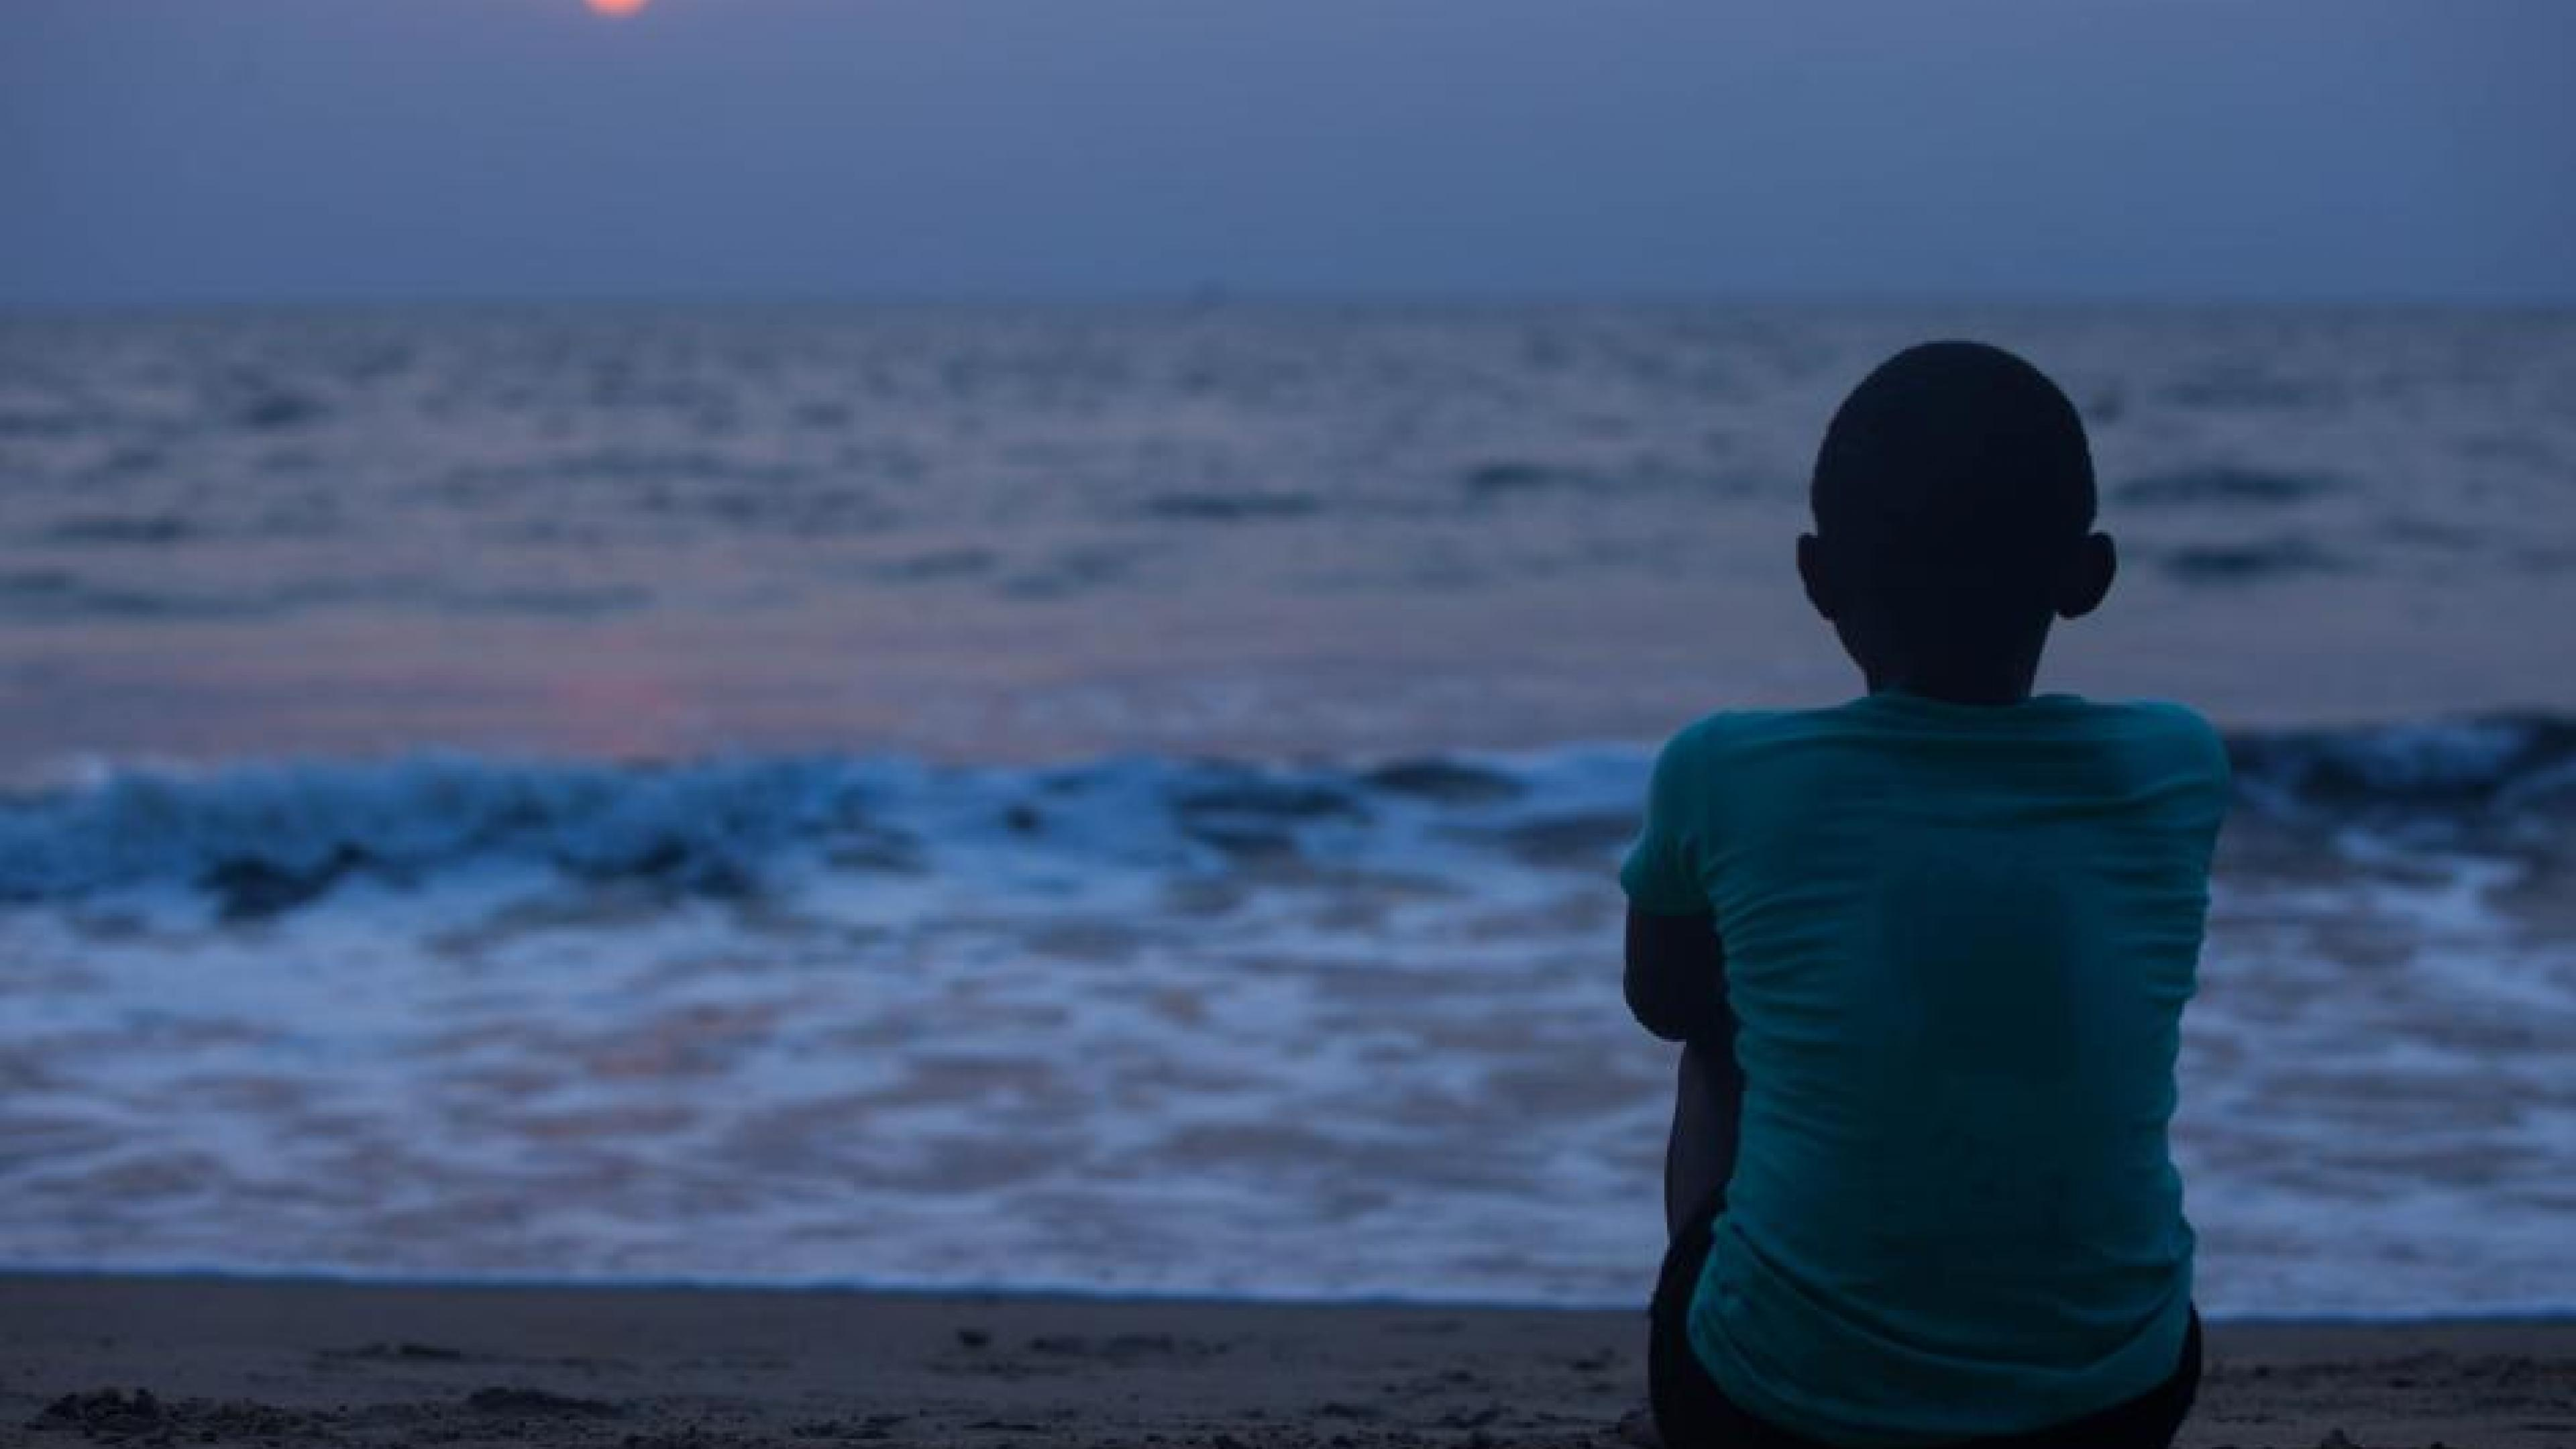 Film Still from Njel. A black boy facing the sea in the sunset.